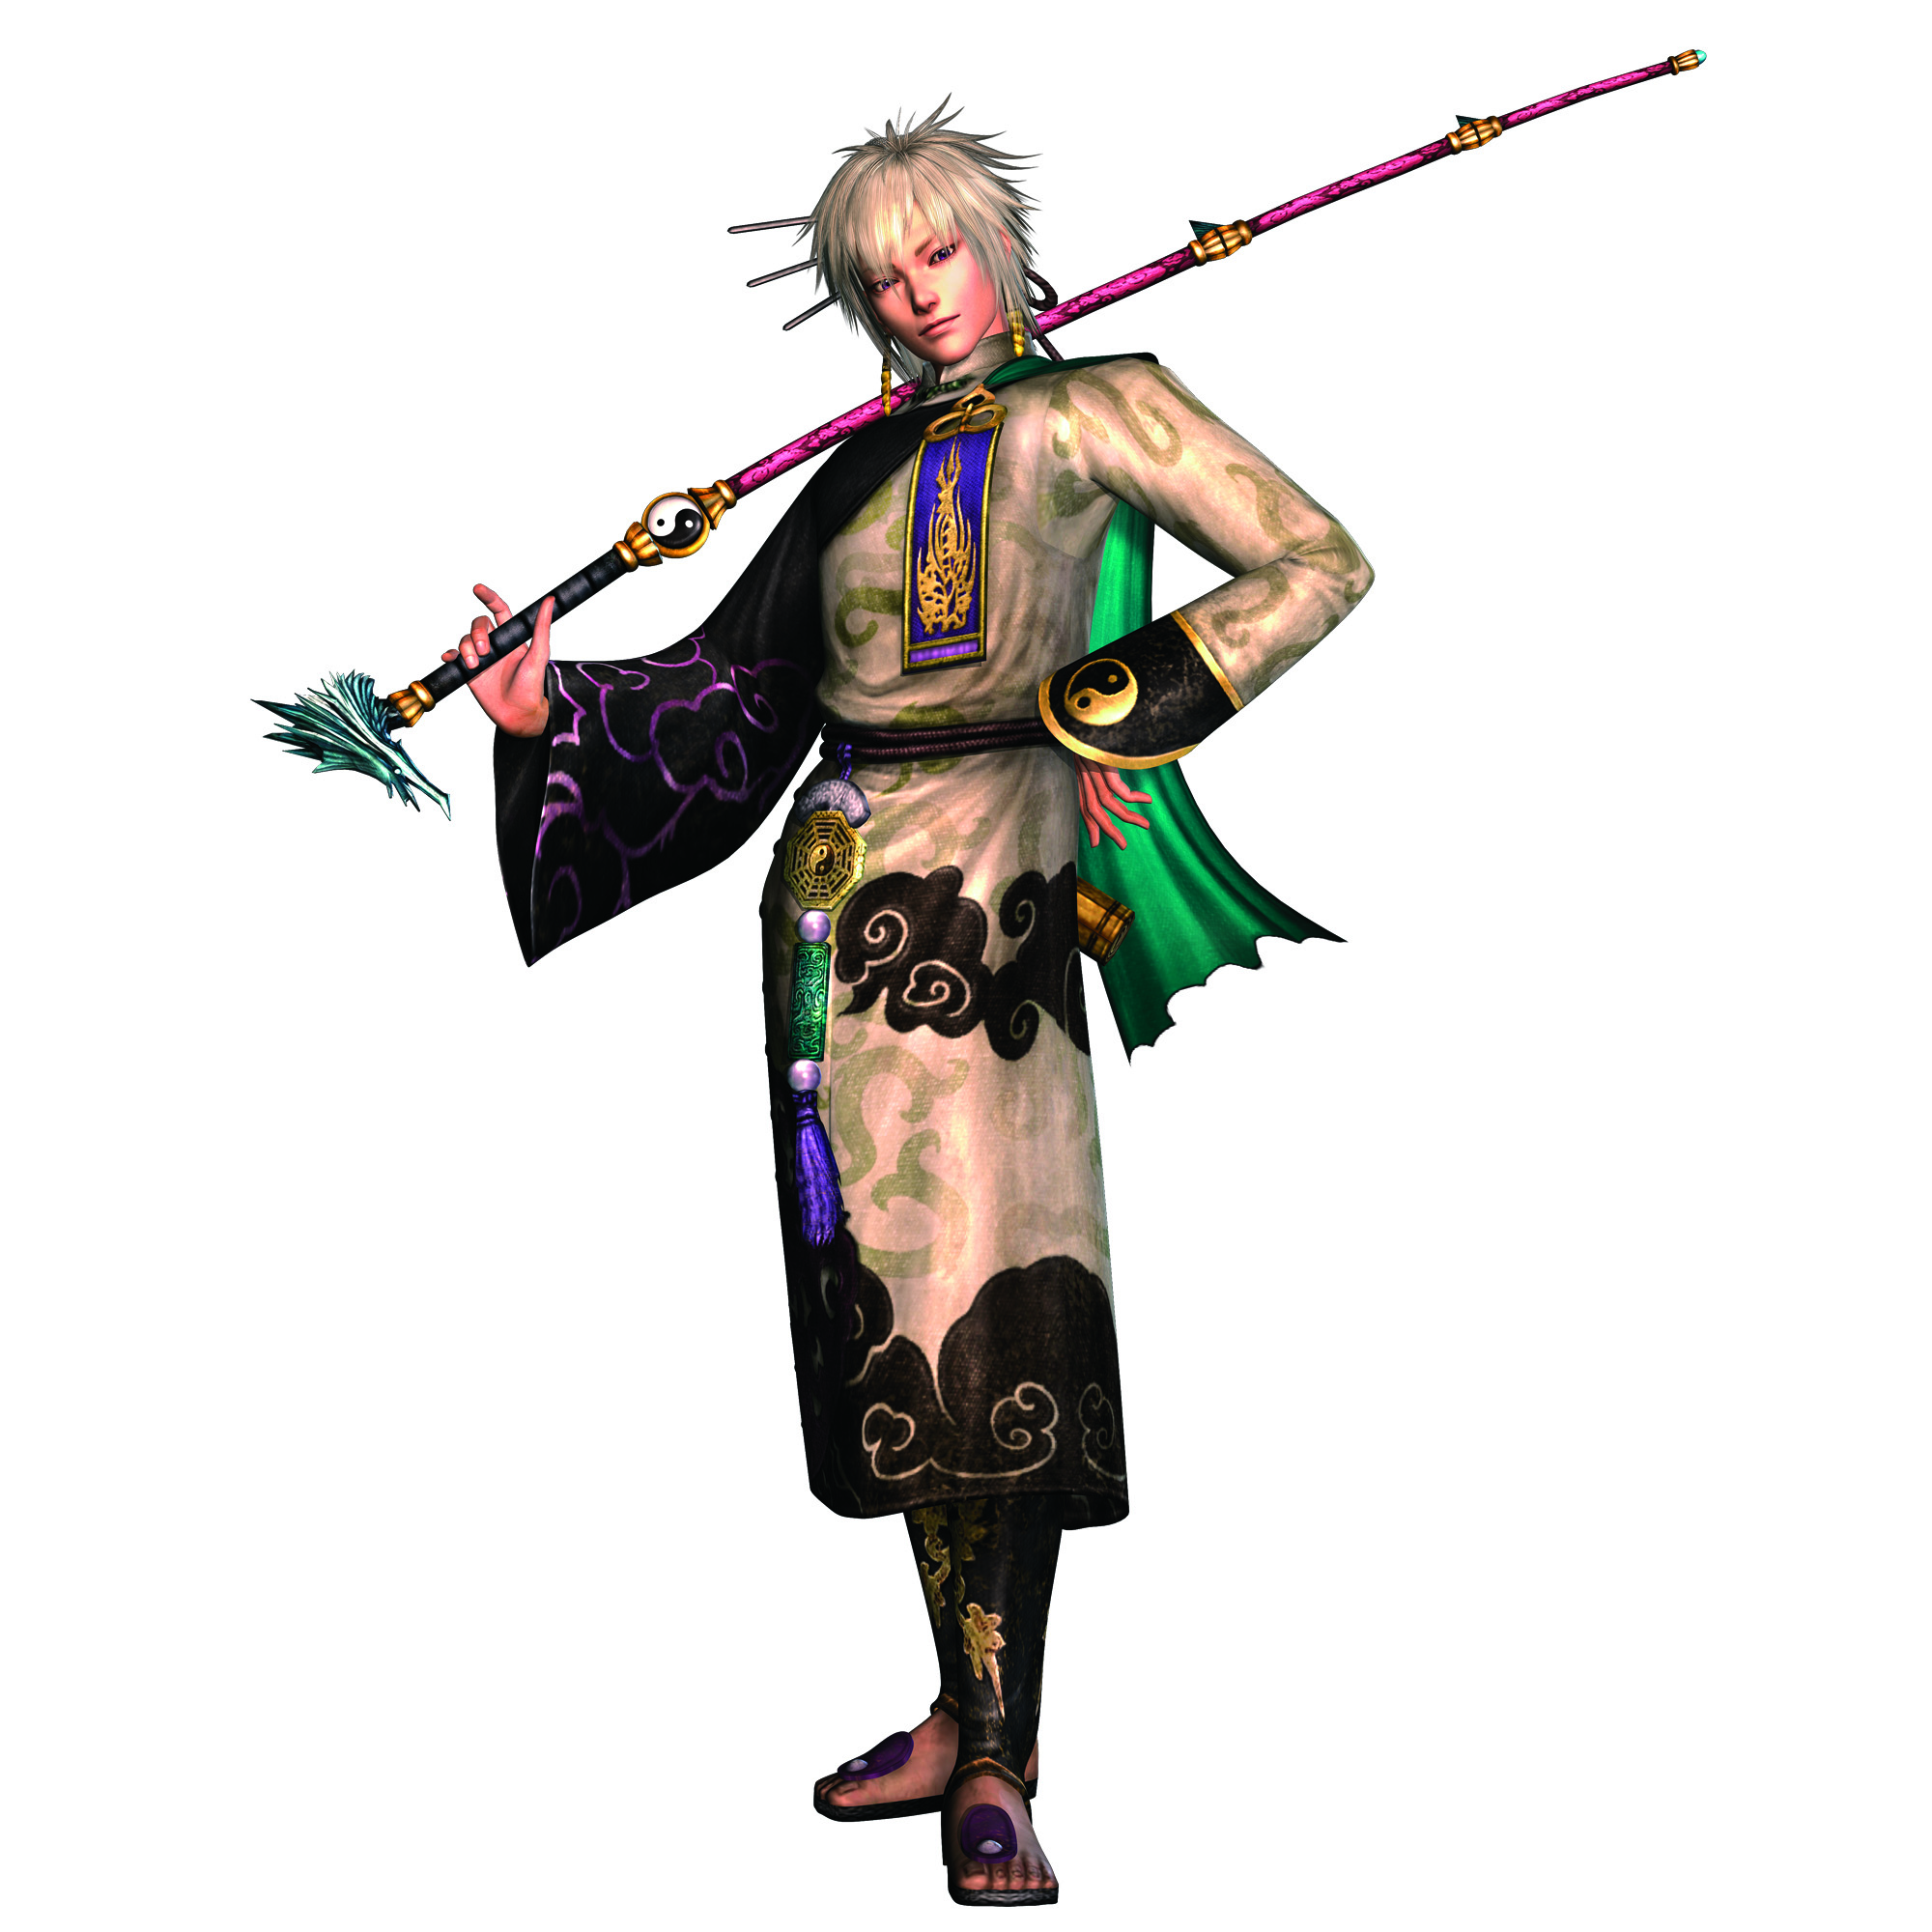 Warriors Come Out And Play Download: Warriors Of Orochi Imagefap Nackt Photo